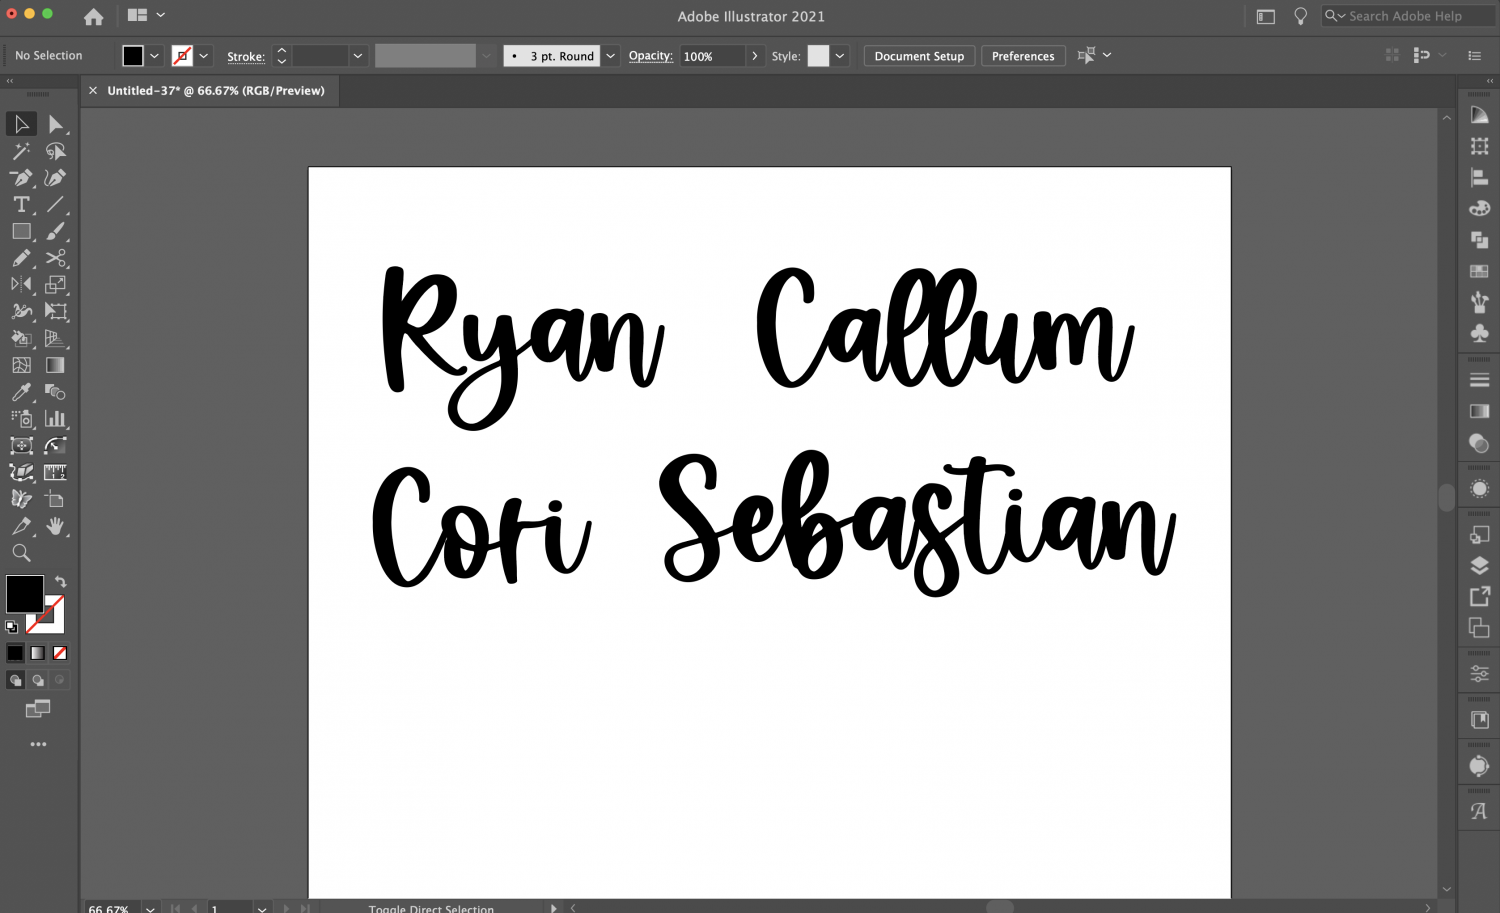 Four names on AI canvas, in festive font and resized.